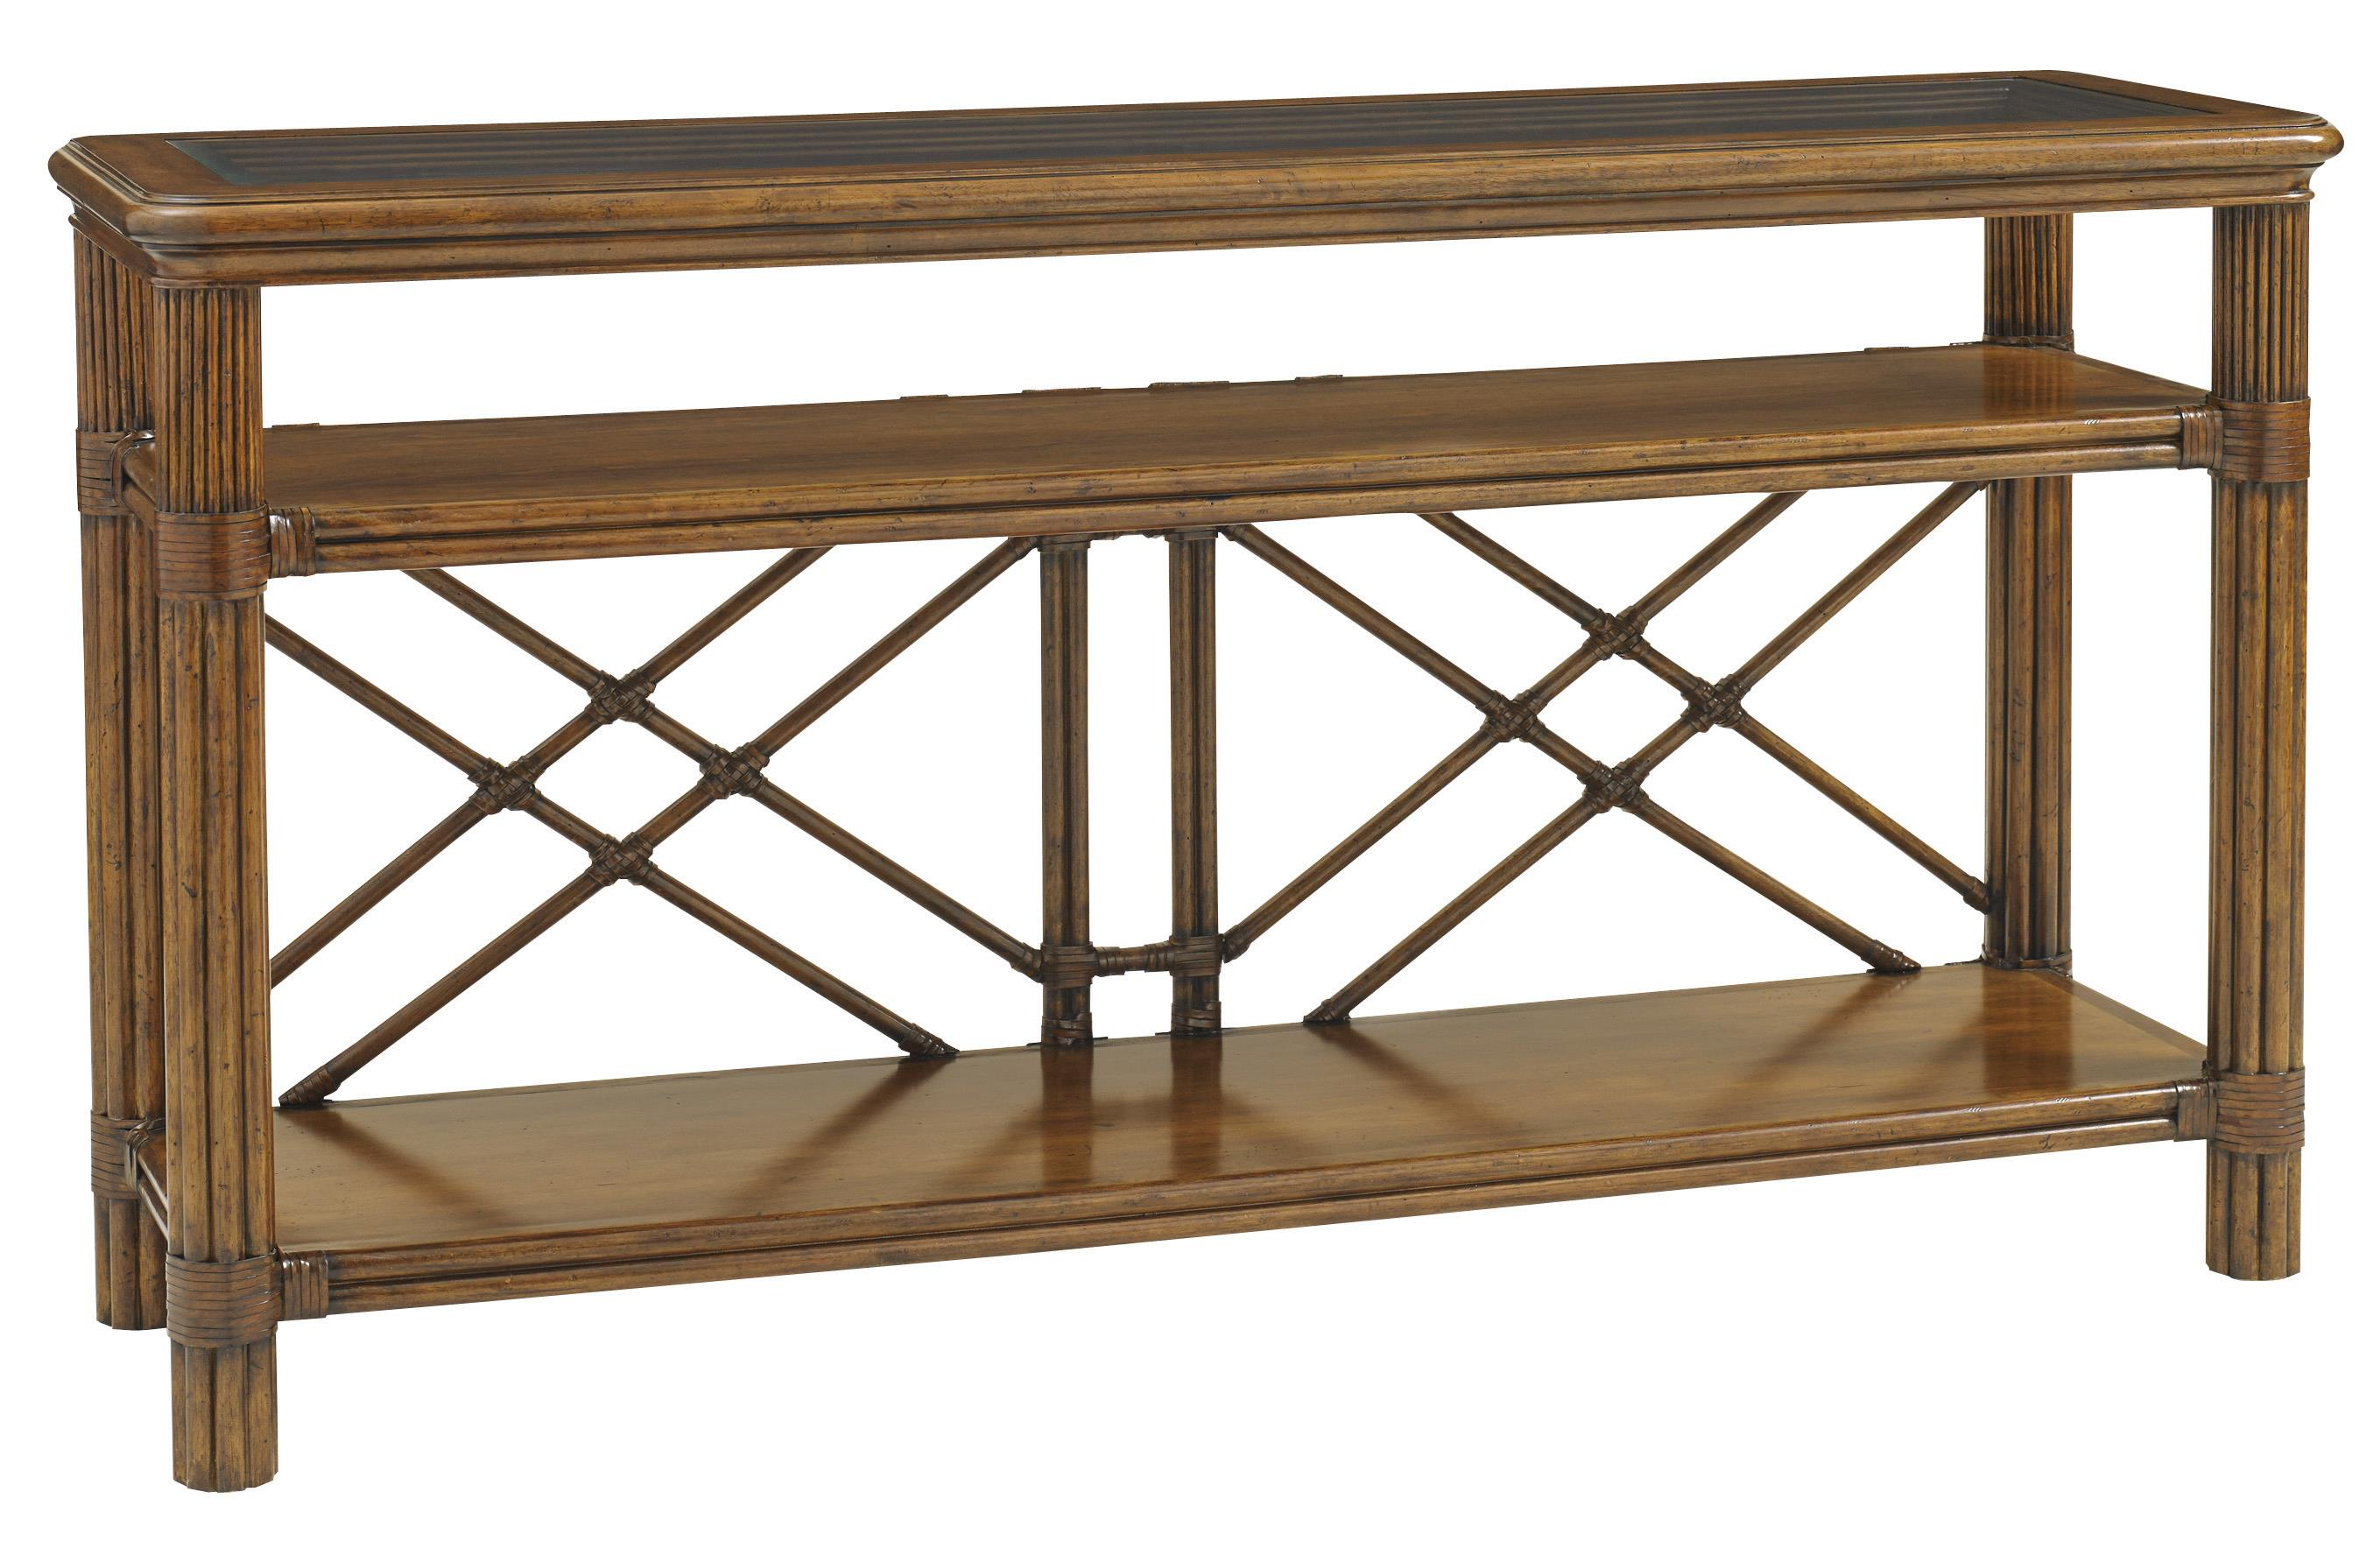 Bali Hai Islander Console by Tommy Bahama Home at Baer's Furniture